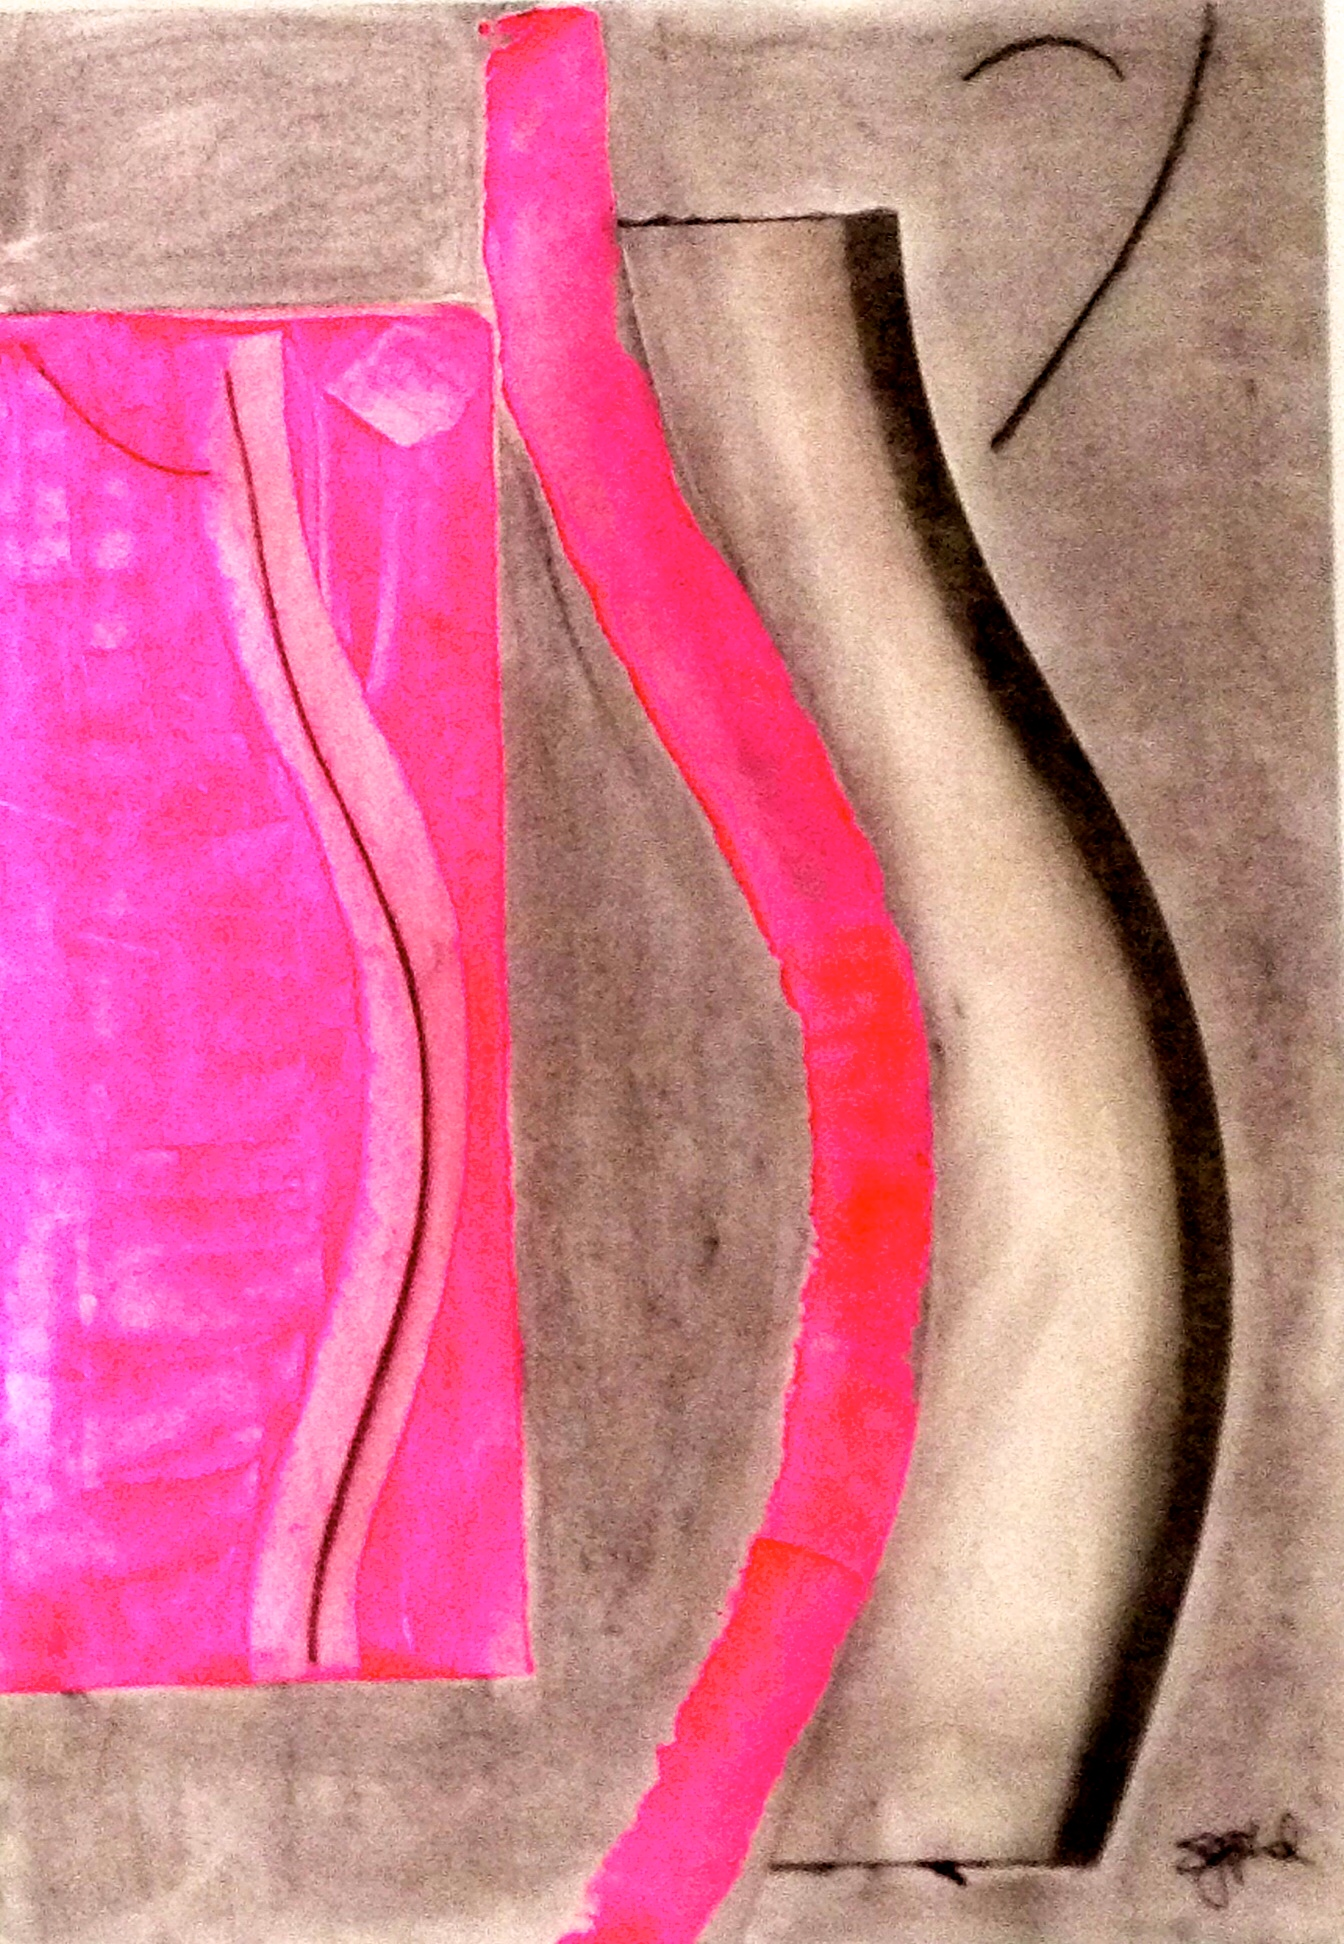 layers of self in pink relief